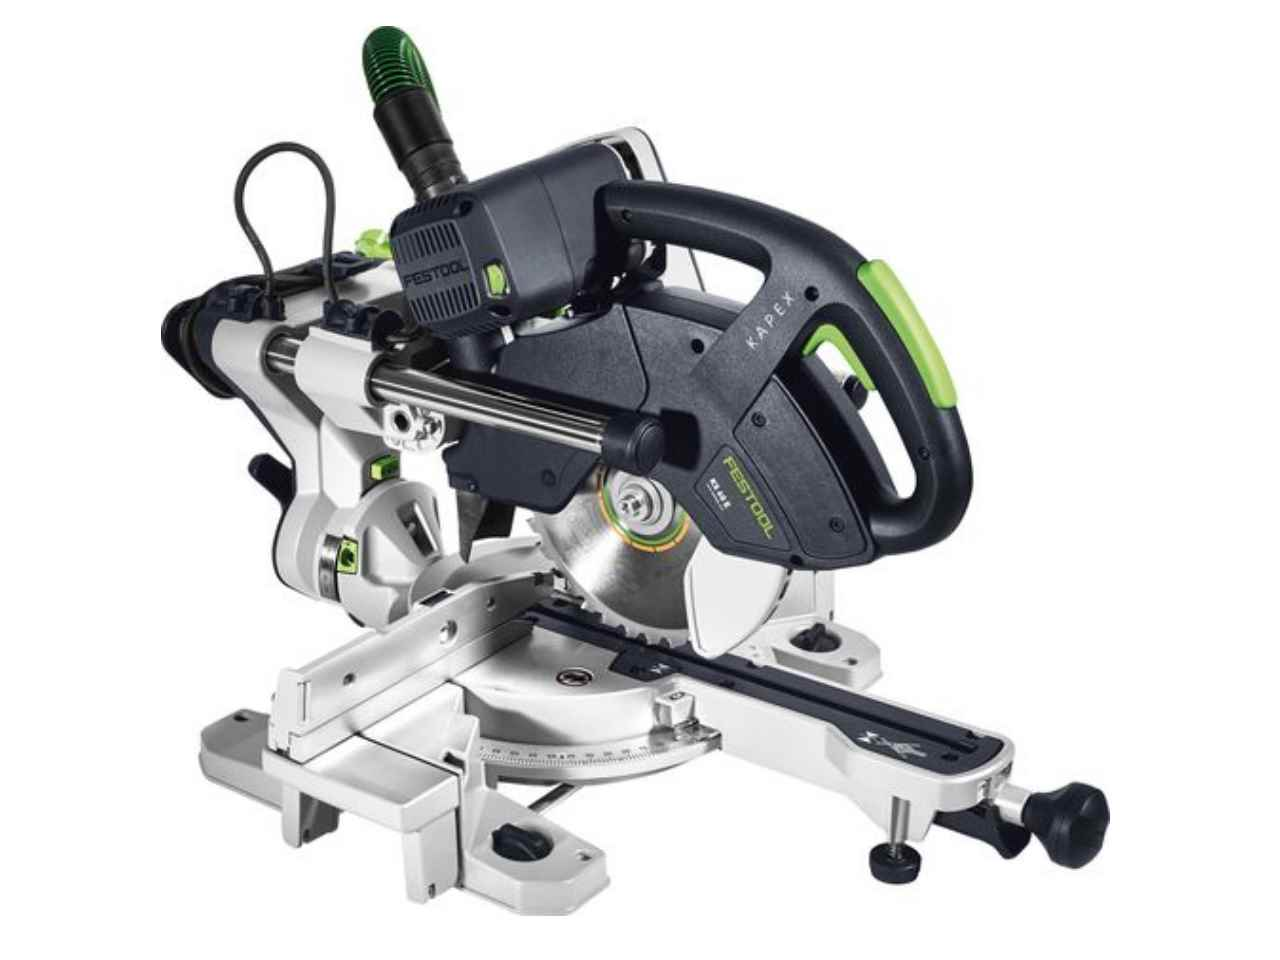 festool 561684 ks60 240v kapex sliding compound mitre saw. Black Bedroom Furniture Sets. Home Design Ideas